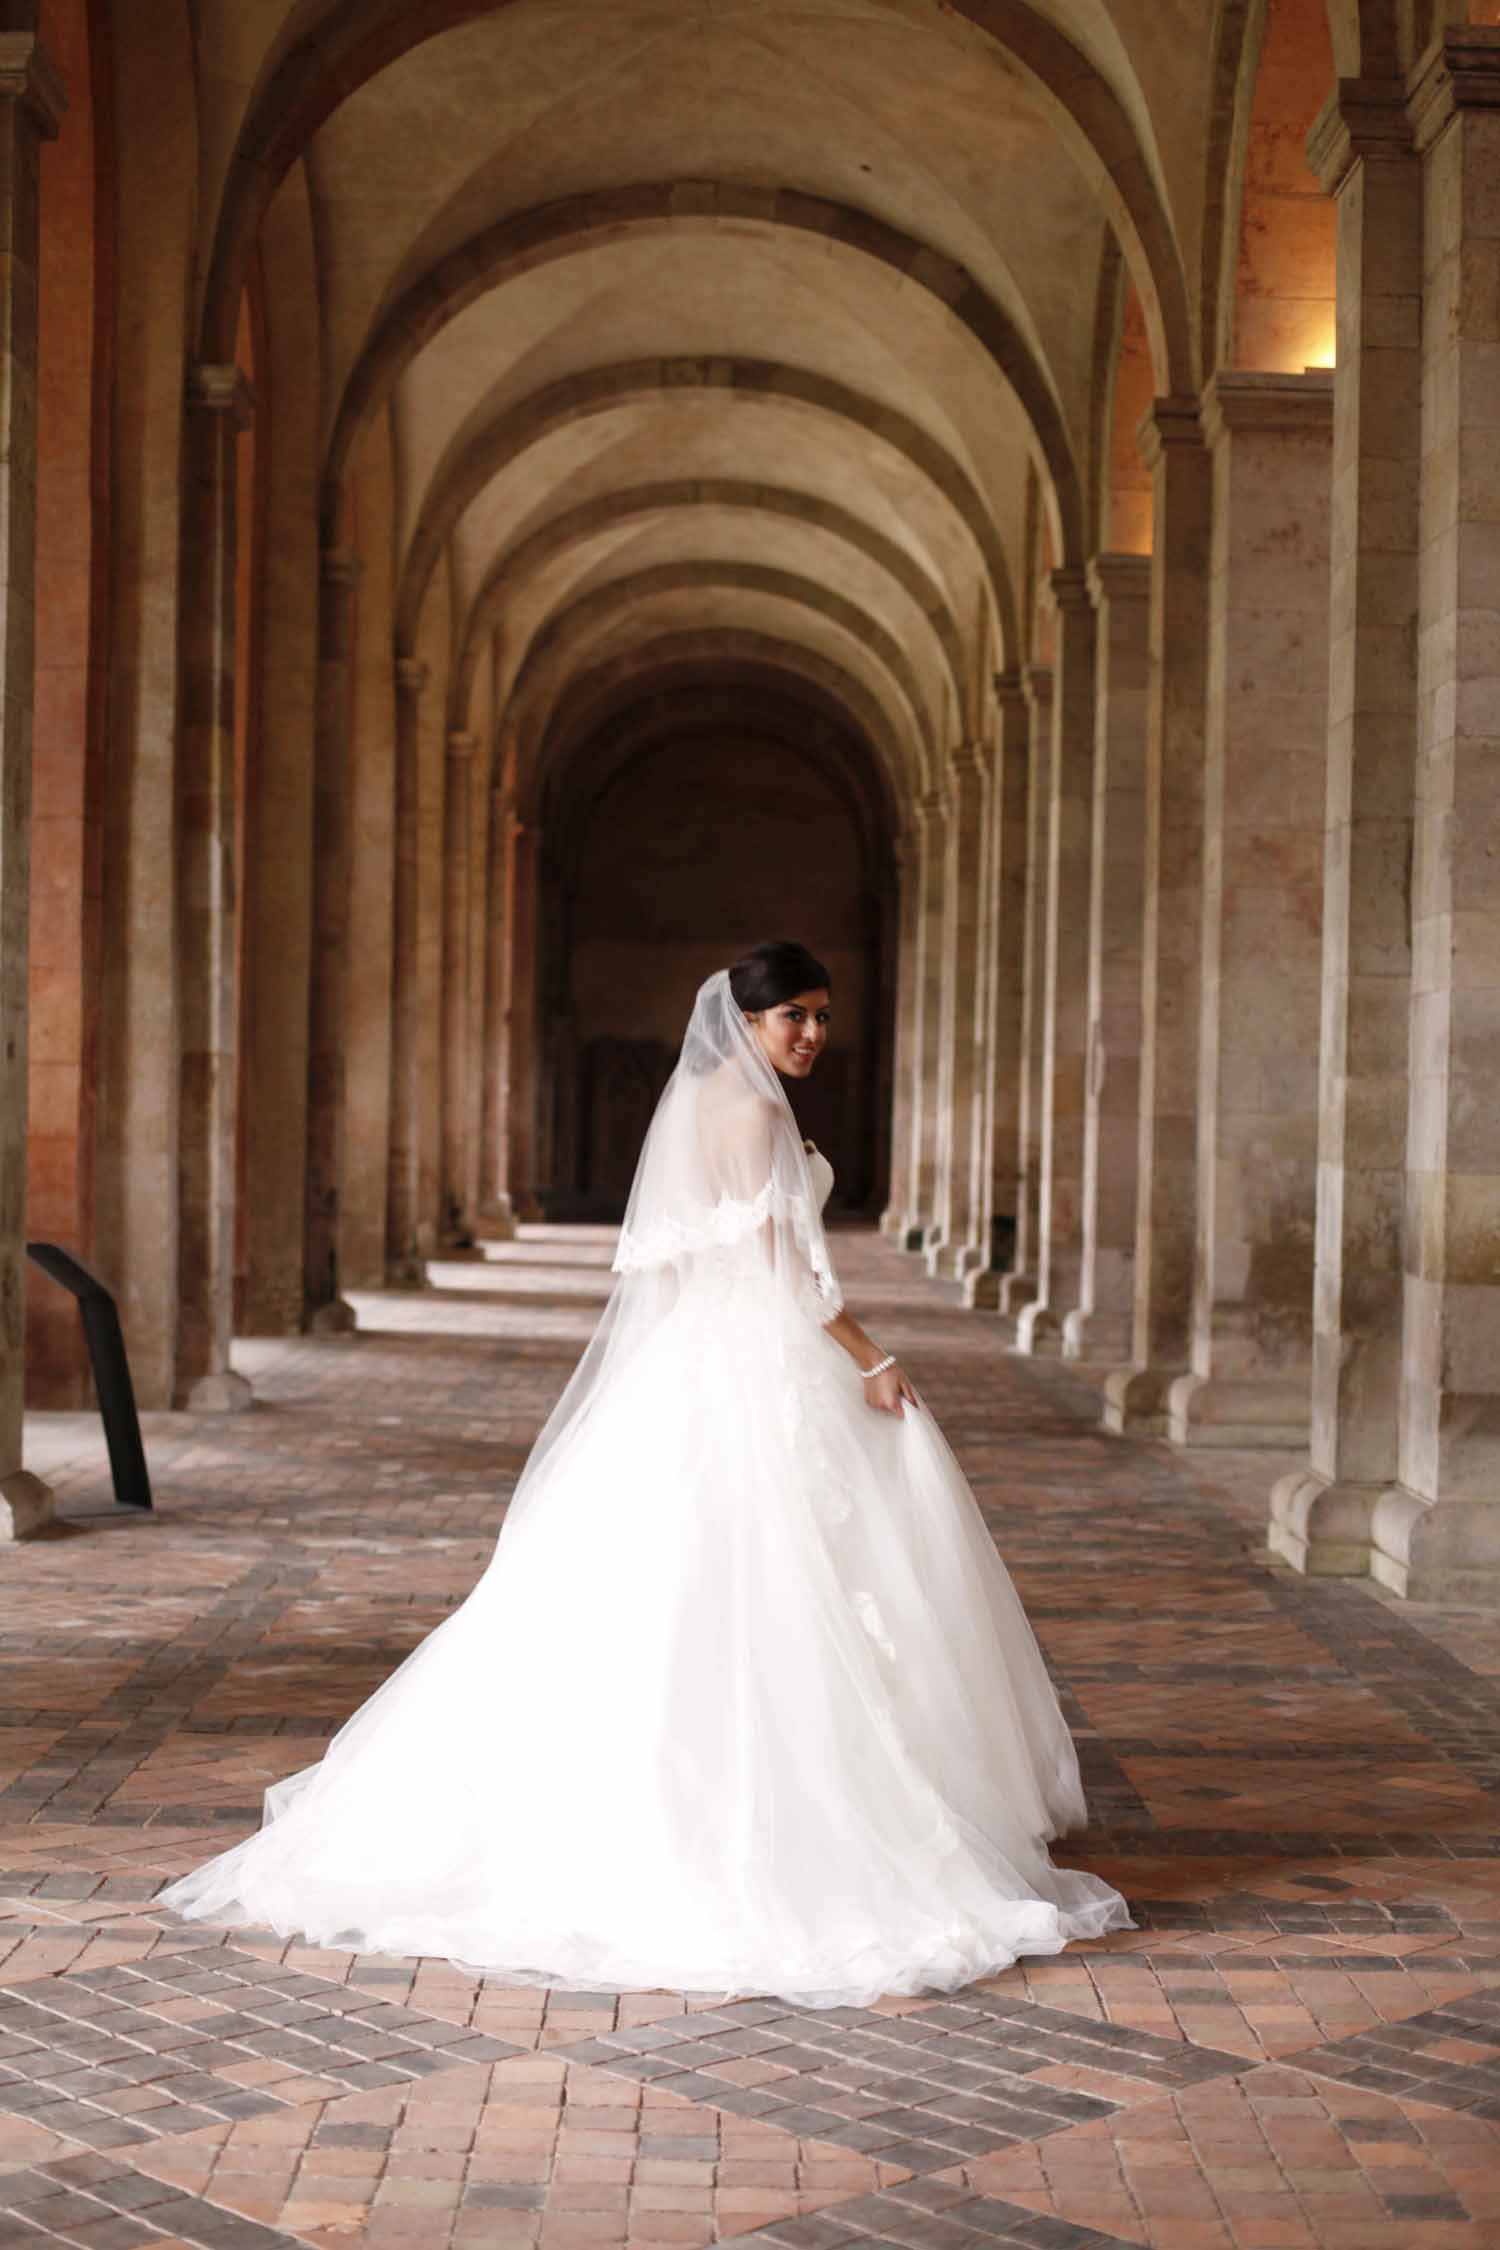 Bride at Kloster Eberbach, Germany, during wedding style shoot by Flora Nova Design